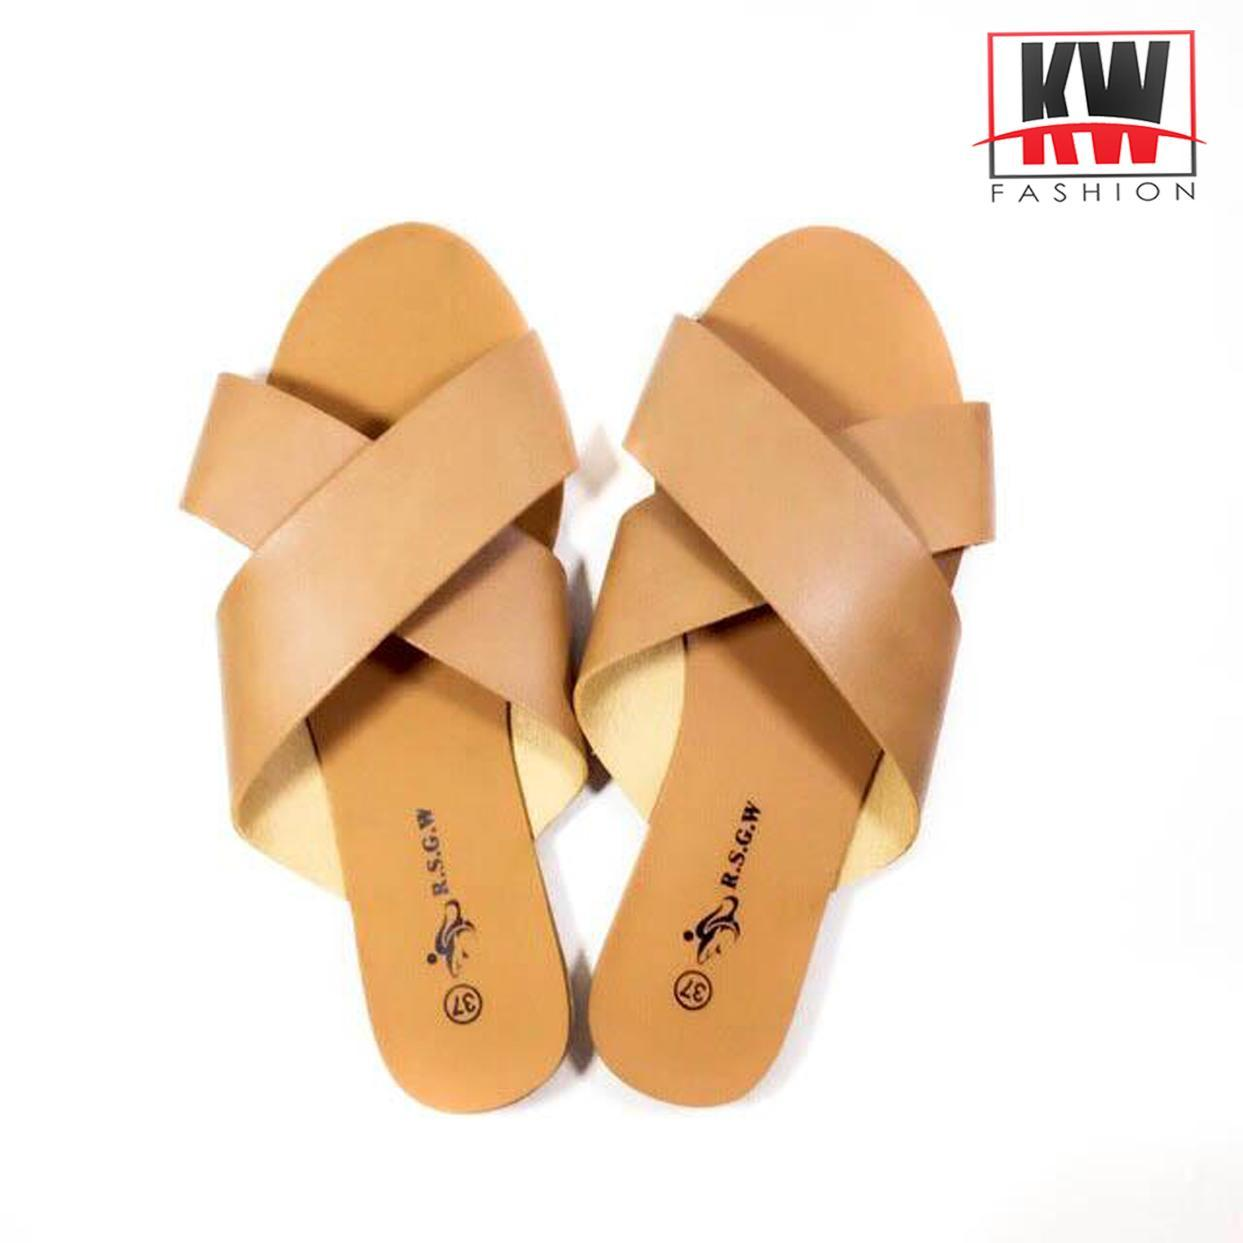 532ef03a2e4c9 Womens Sandals for sale - Ladies Sandals online brands